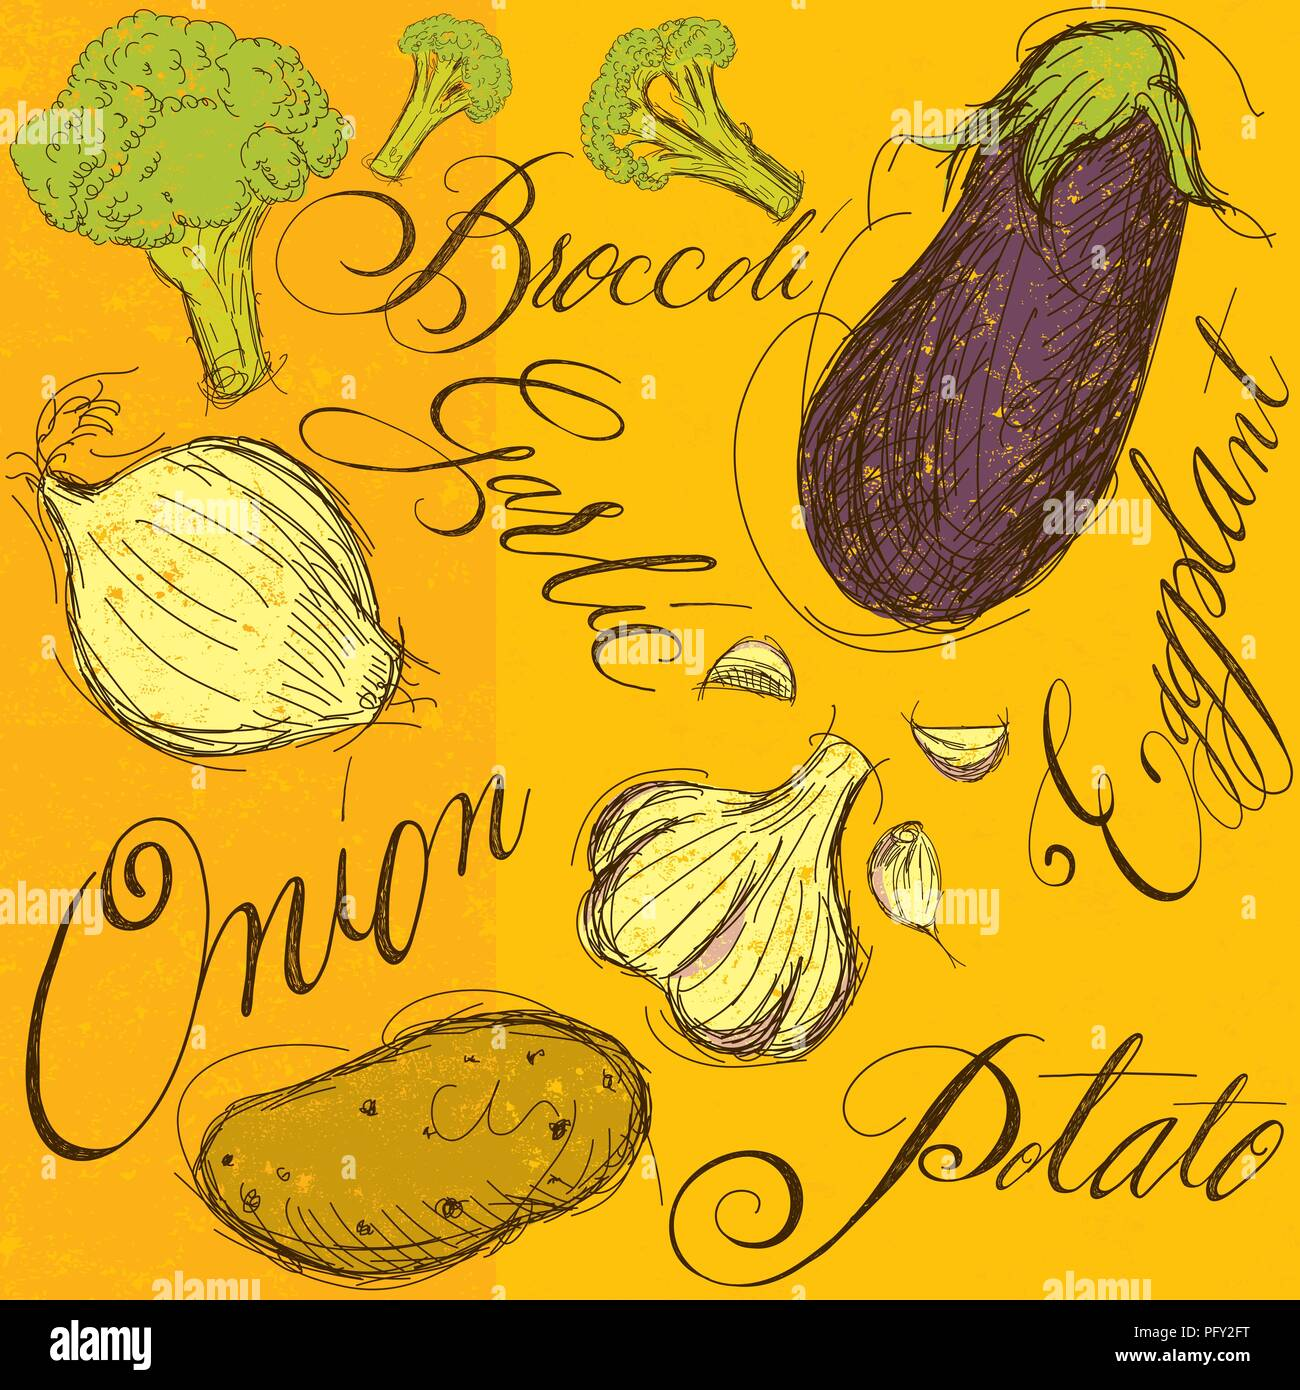 Vegetable mix with calligraphy. The vegetables are broccoli, garlic, onion, eggplant, and a potato. - Stock Vector